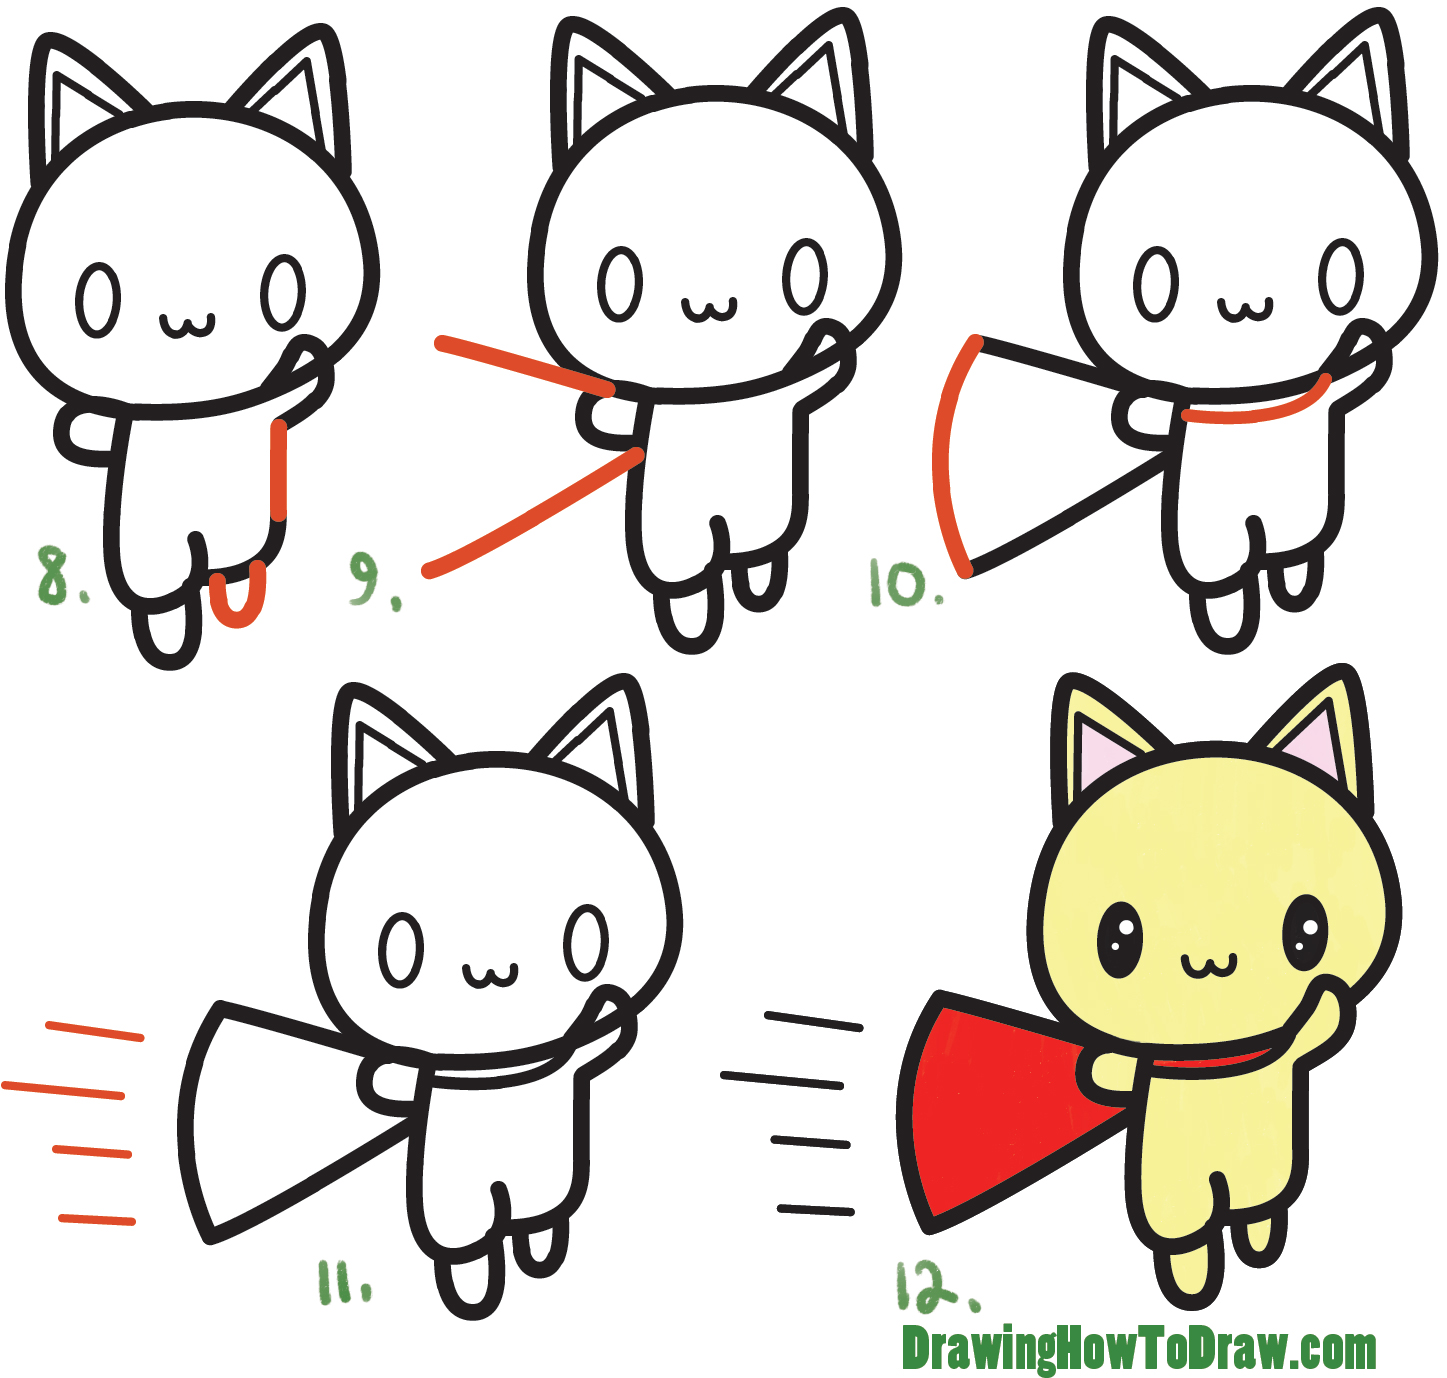 1447x1378 How To Draw A Cute Cat Super Hero (Kawaii) With Easy Step By Step